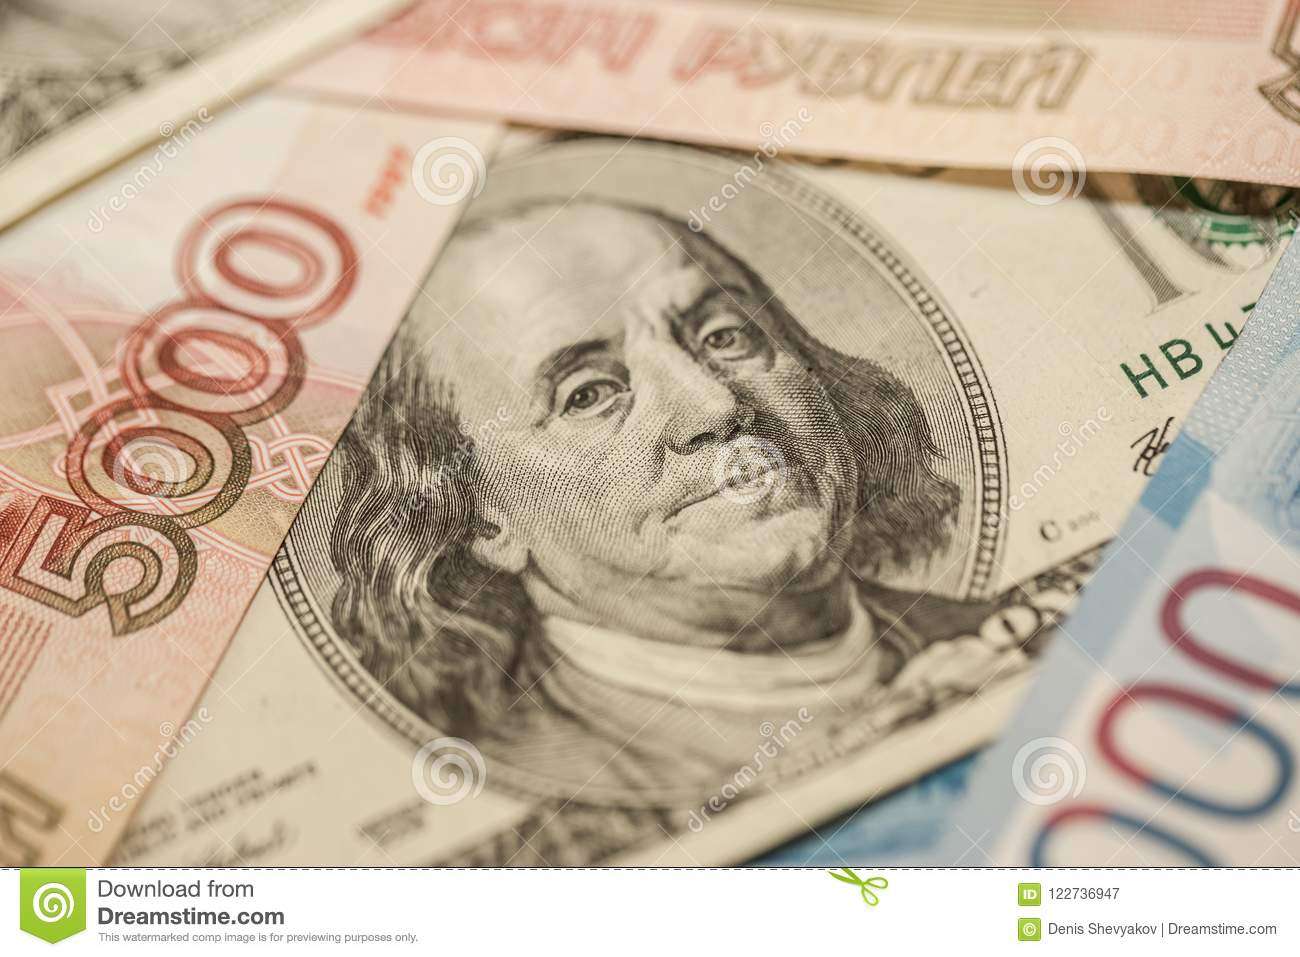 Russian and American banknotes. Fresh exchange rates. Economy of the two countries.